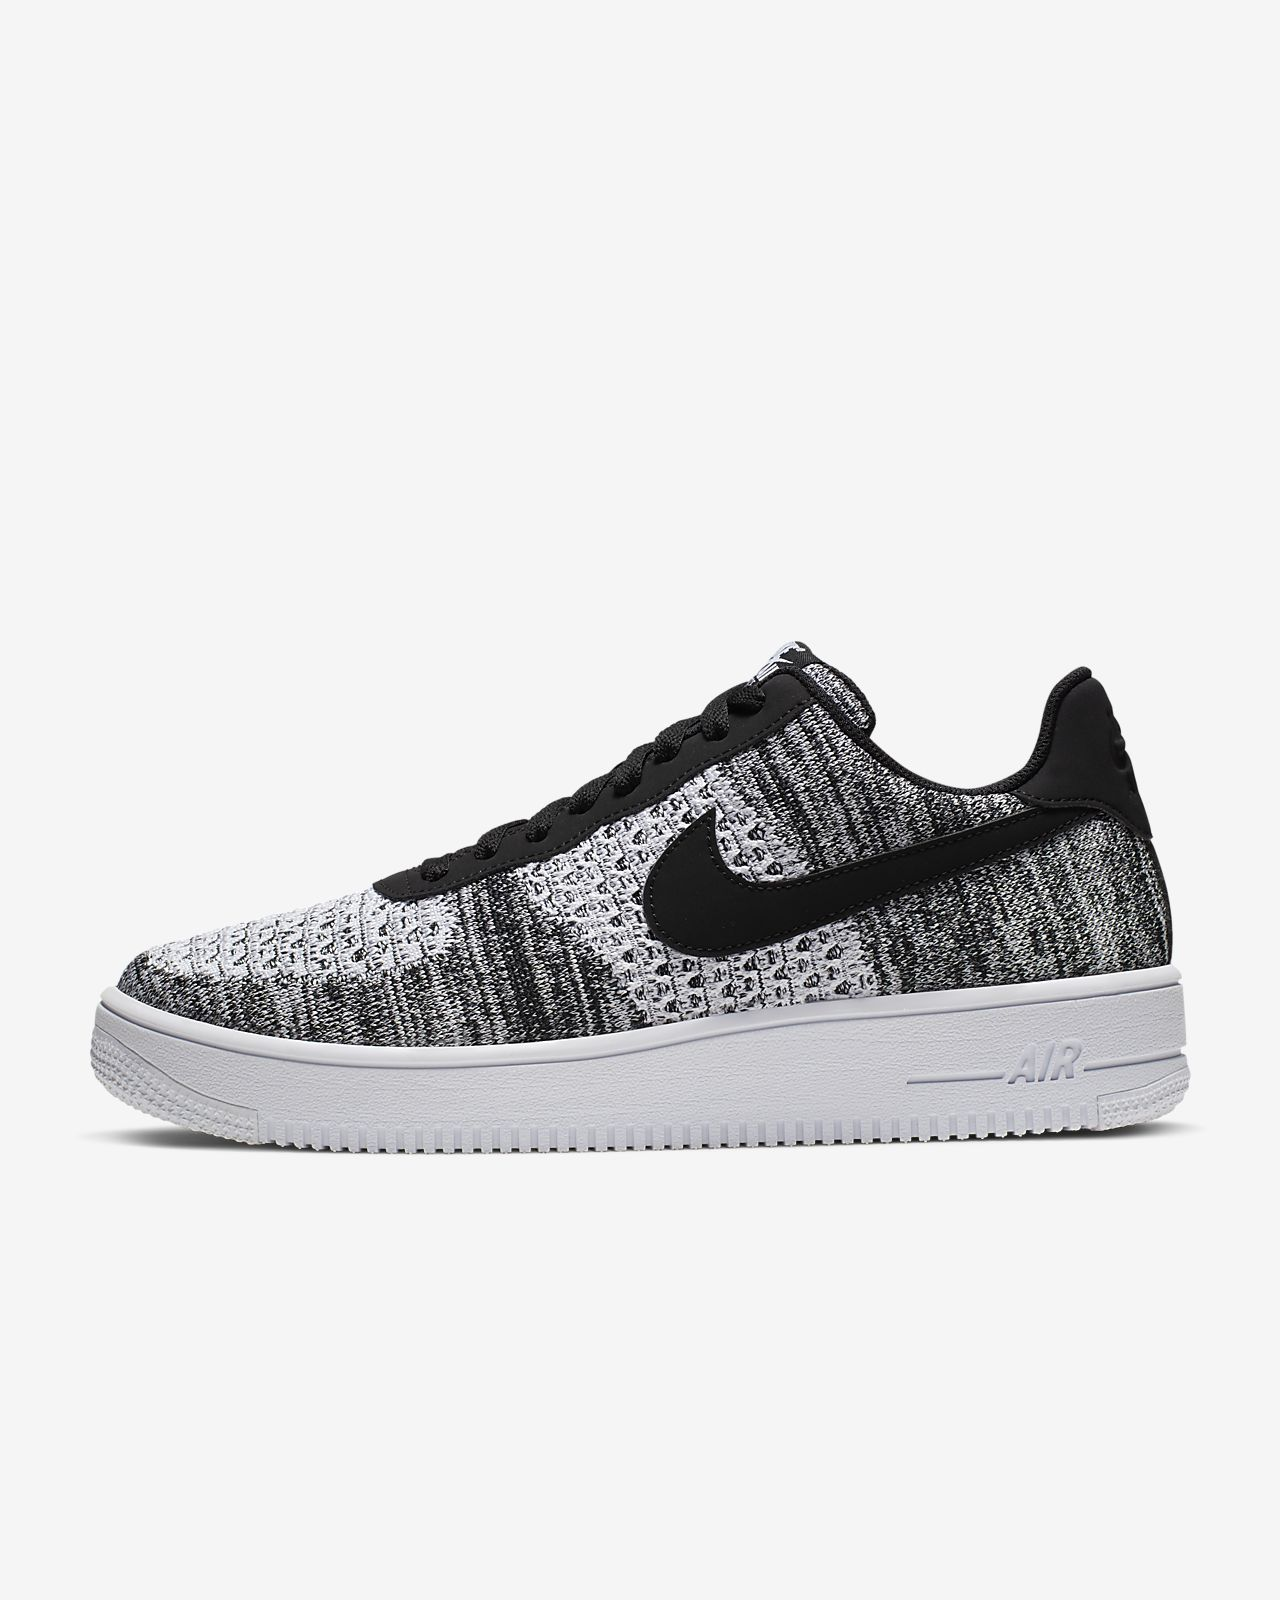 new product eea59 d2940 Nike Air Force 1 Flyknit 2.0